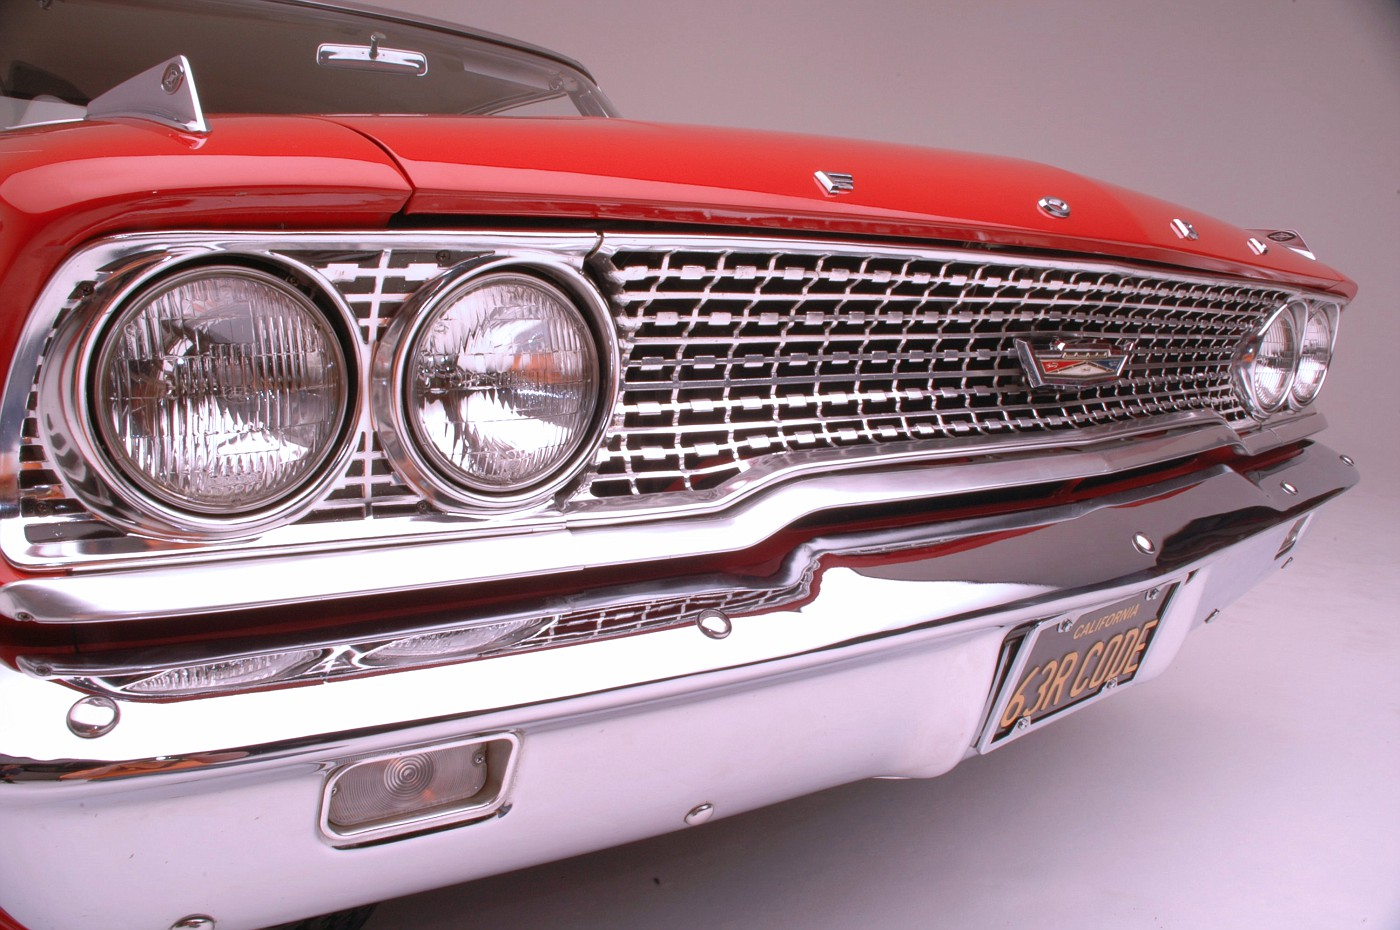 1963 Ford Galaxie 500 XL 427 R-code front grille detail 1